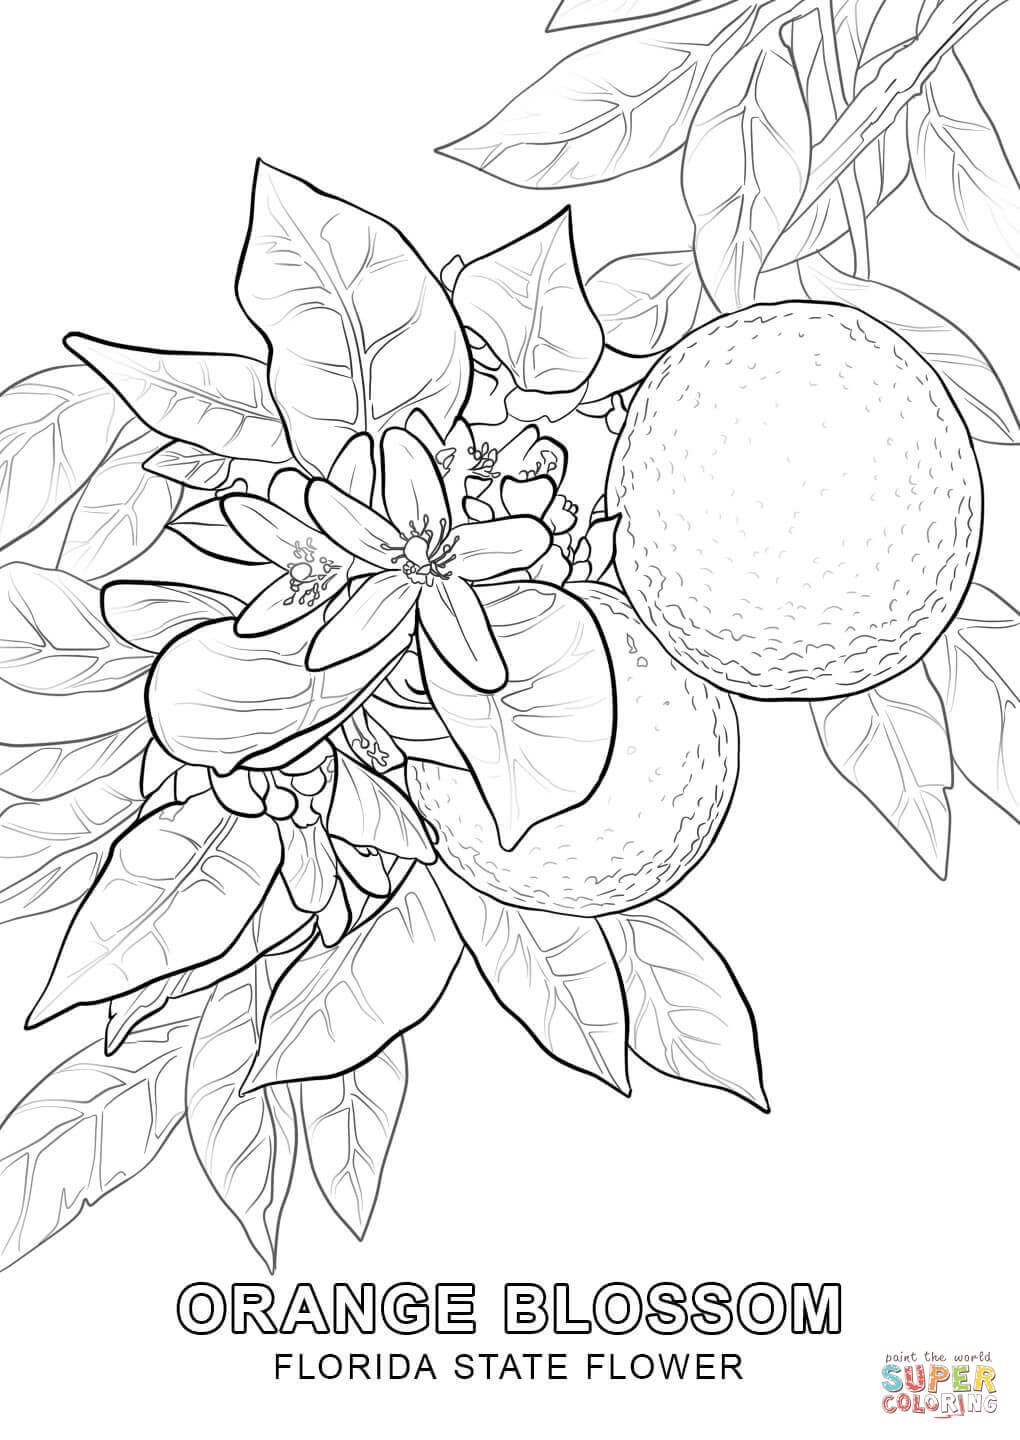 Florida State Flower Super Coloring Cute Coloring Pages